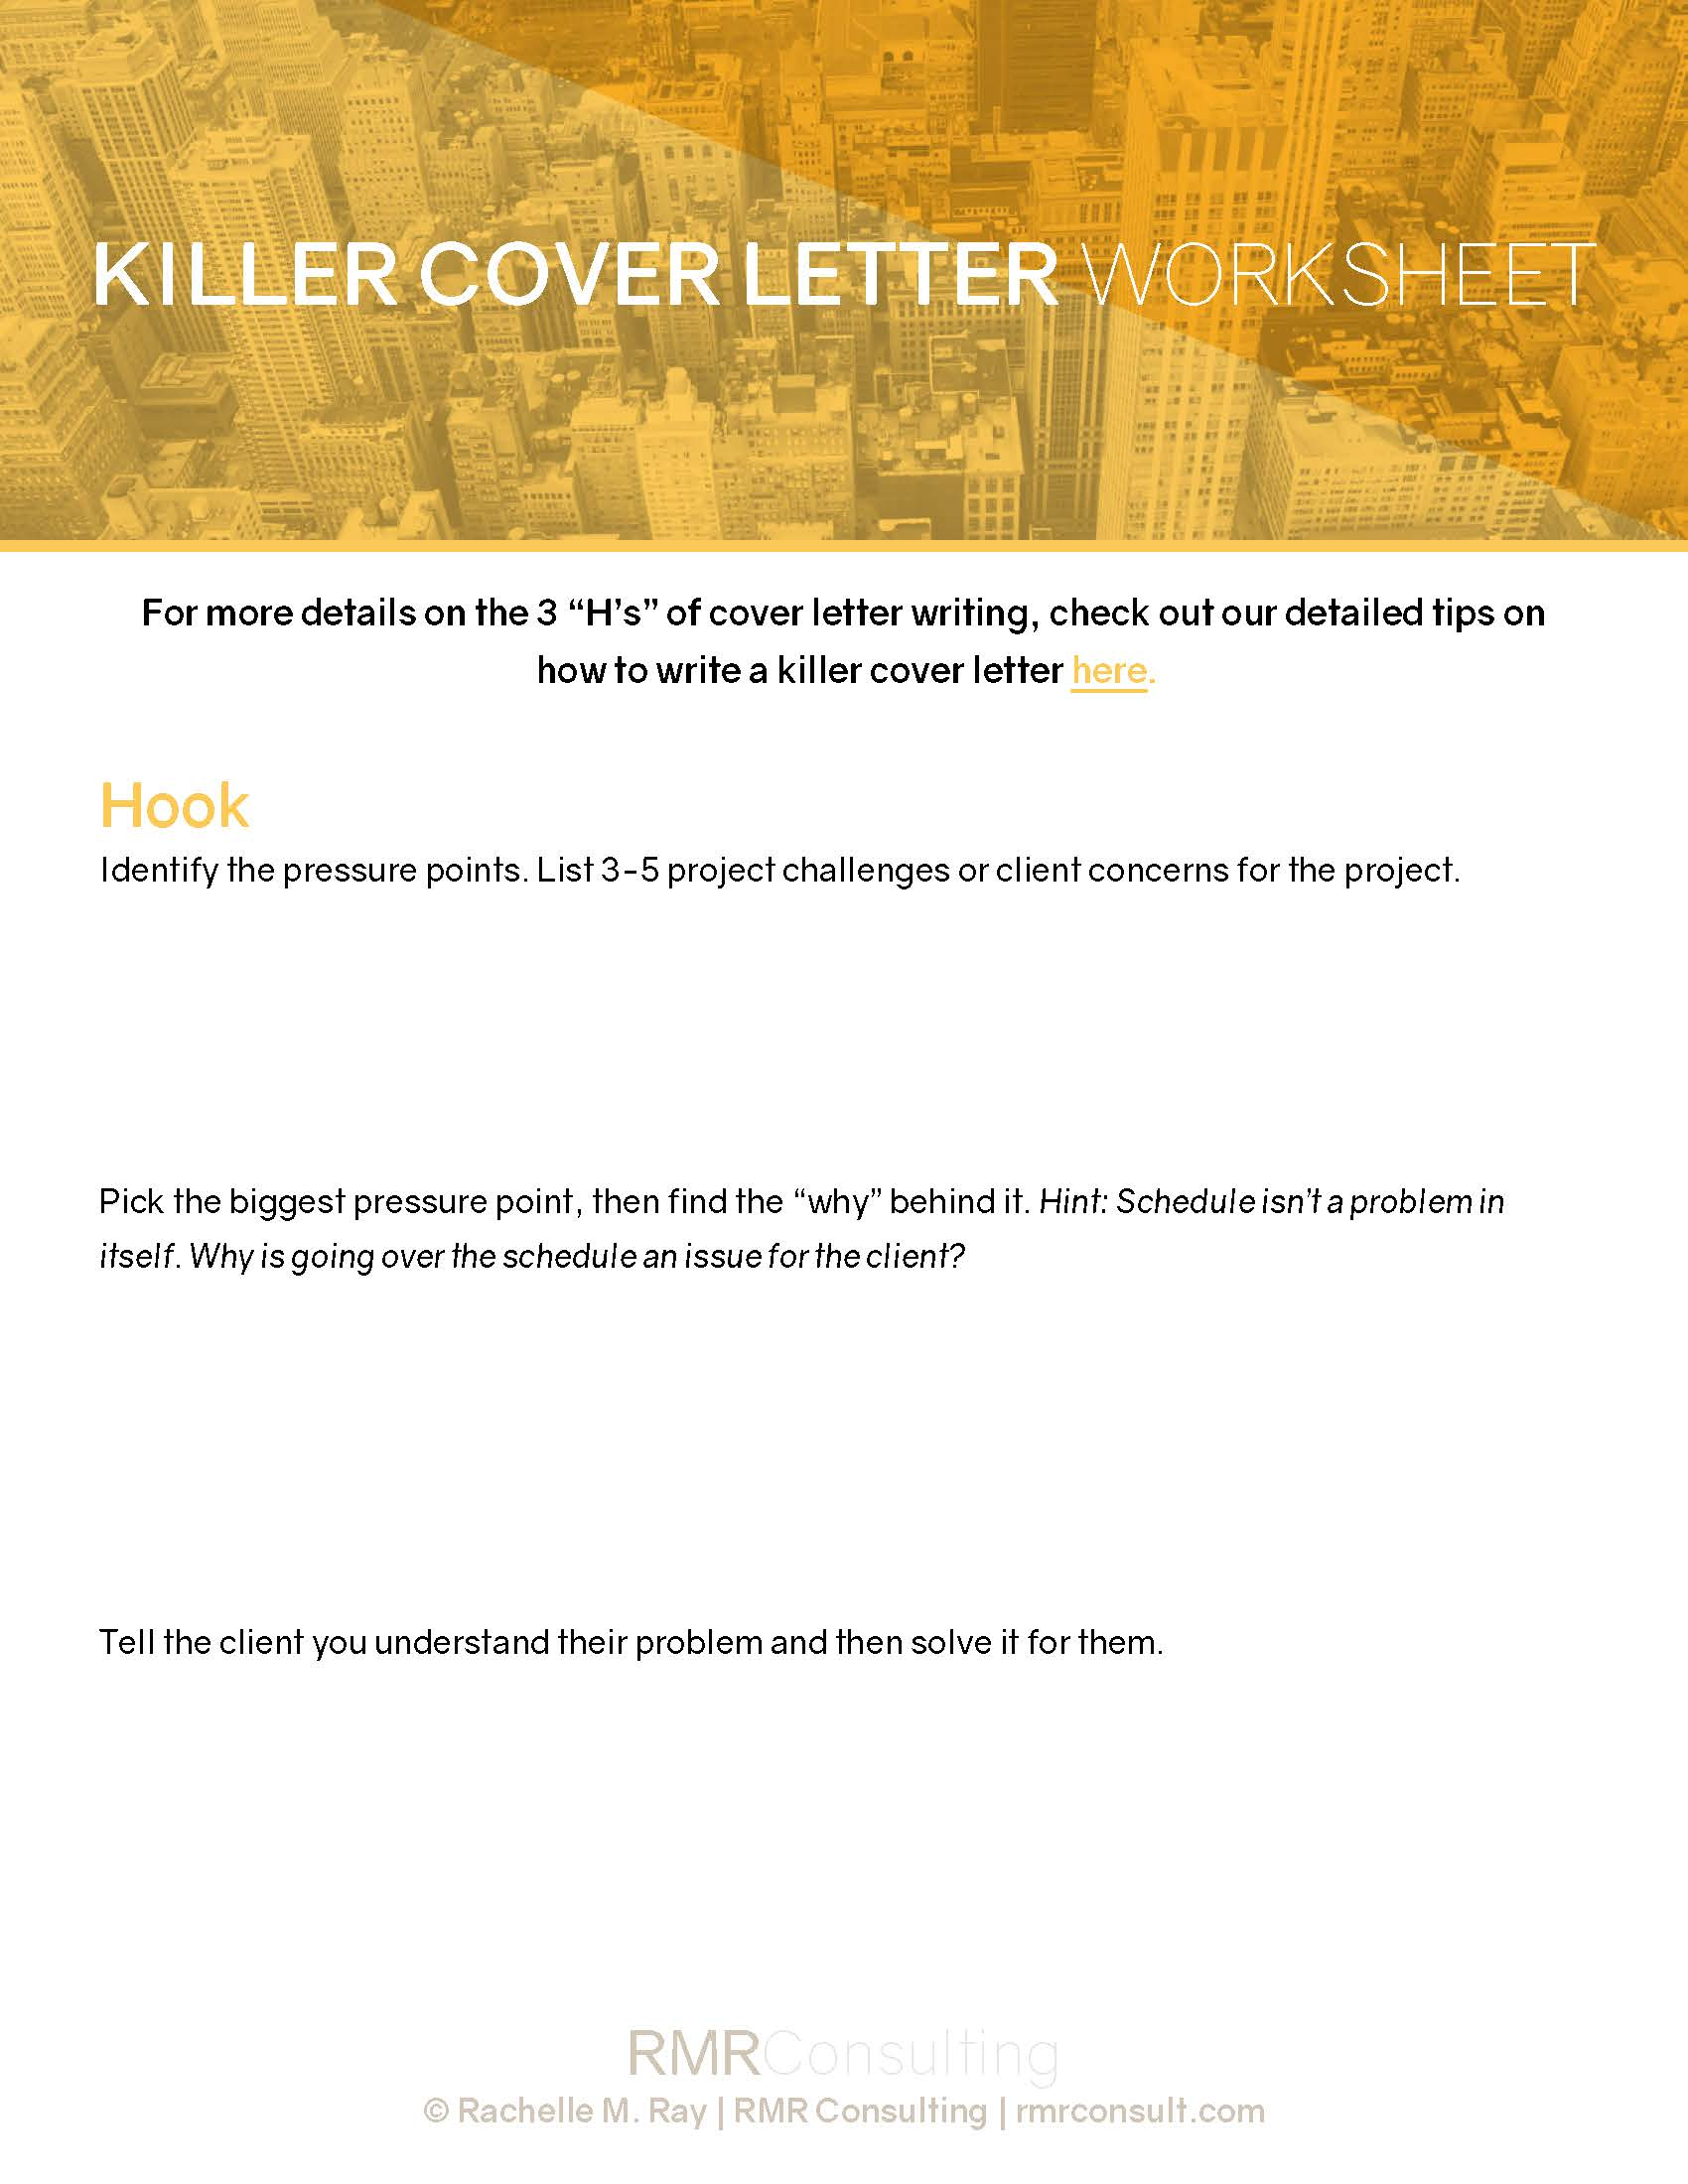 RMR_Killer-Cover-Letter-Worksheet_Page_1 | RMR Consulting